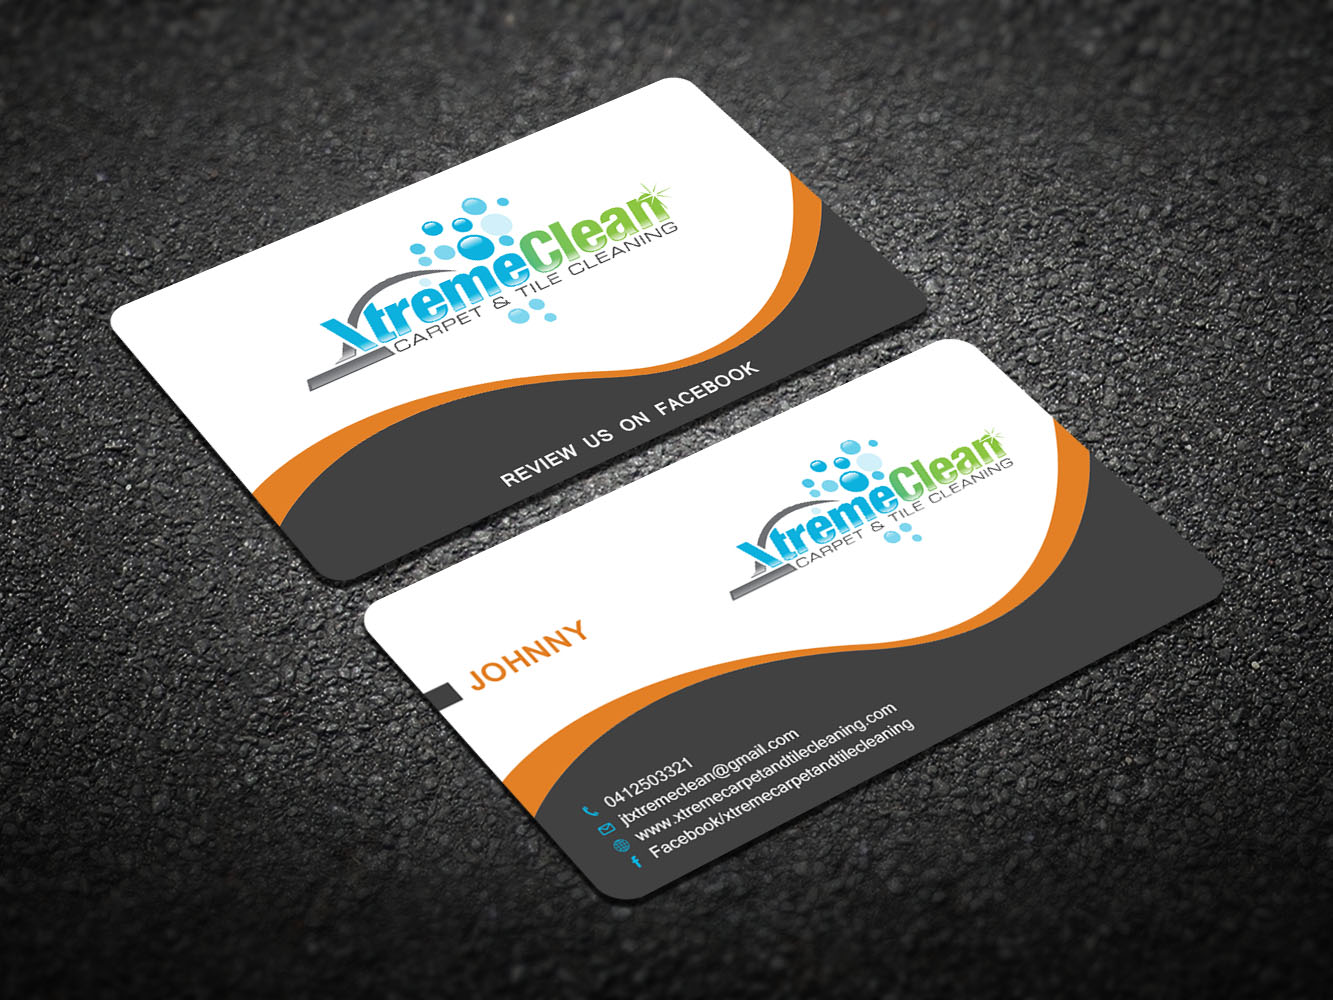 Modern personable business business card design for xtreme carpet business card design by design xeneration for xtreme carpet and tile cleaning design reheart Gallery